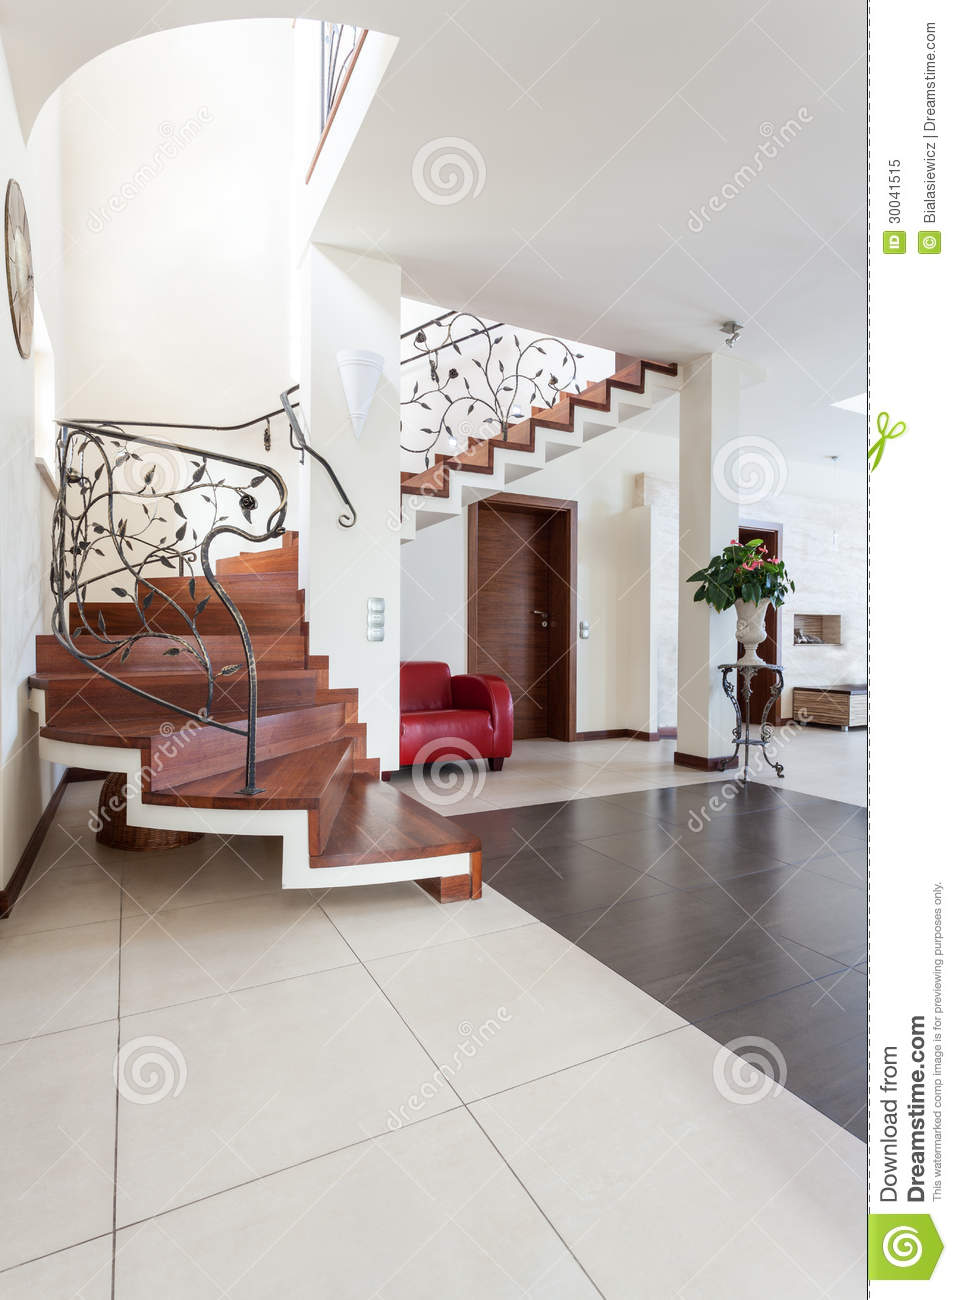 Classy house modern interior royalty free stock photo for Modern classic house interior